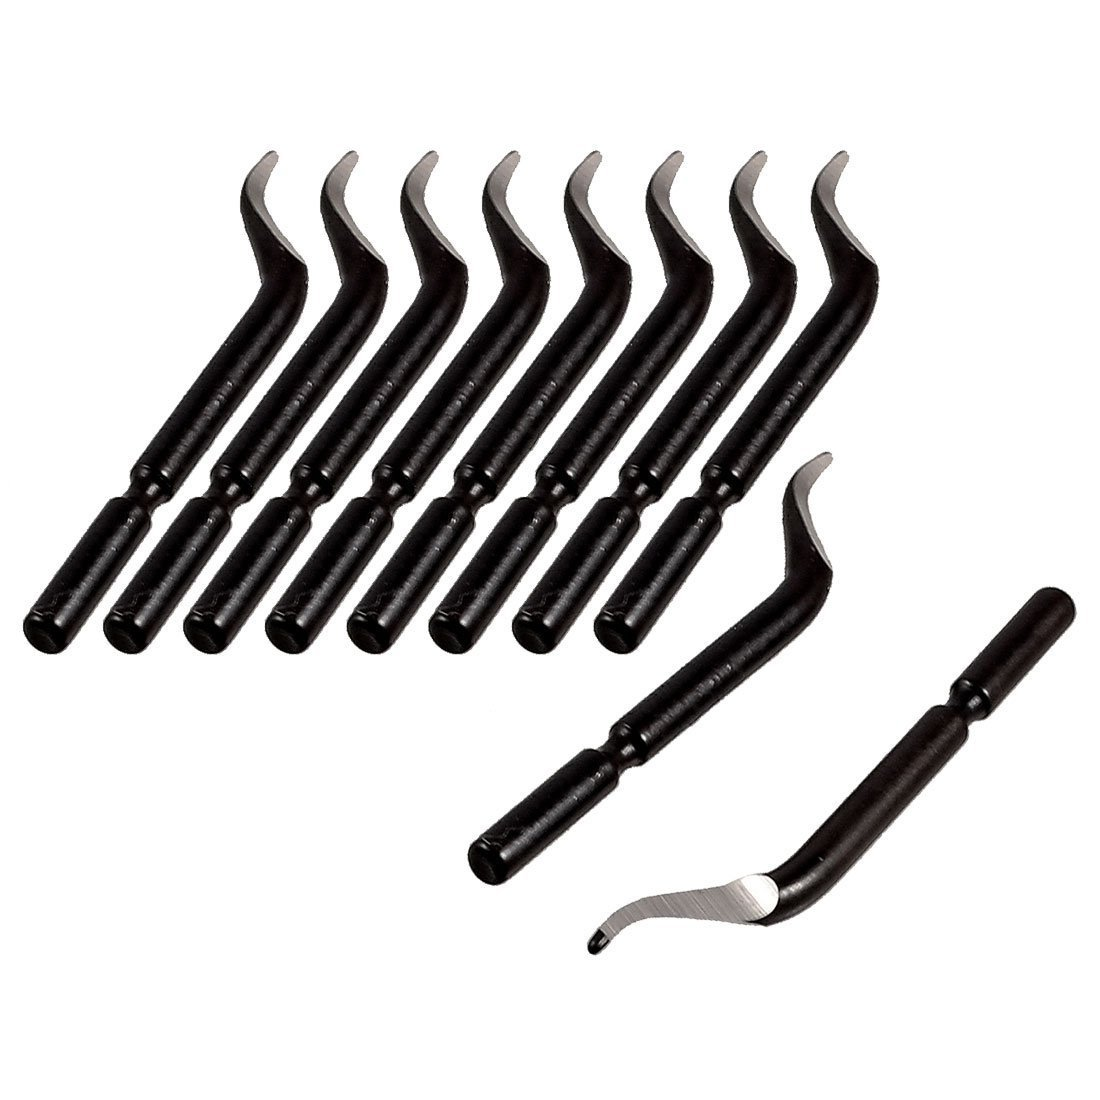 Deburring Blades - SODIAL(R) Replacement Deburred Tool BK3010 S150 Deburring Blades 10 Pcs 065191